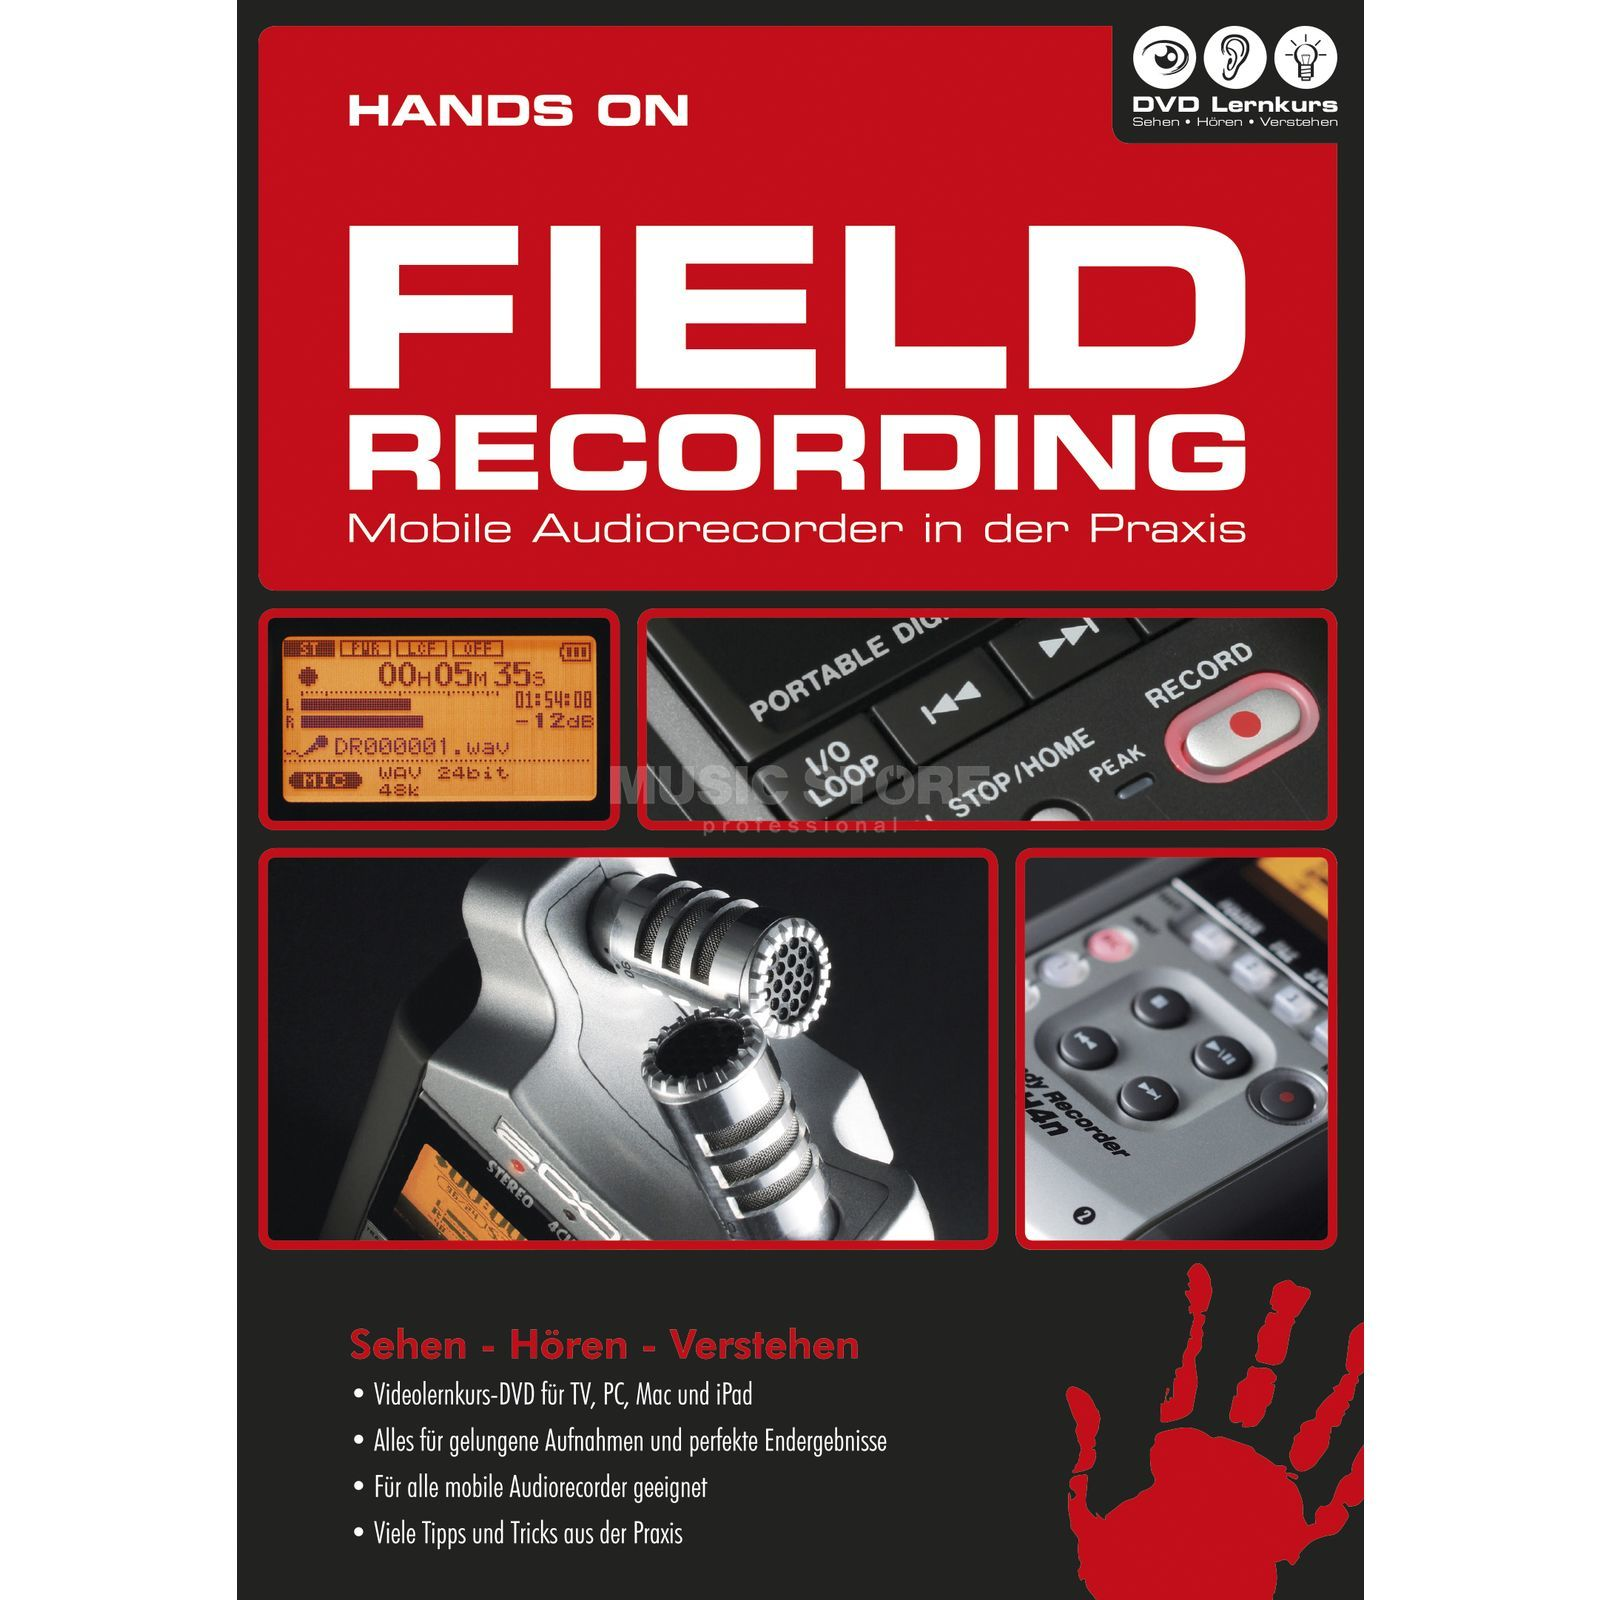 DVD Lernkurs Hands on Field Recording Mobile Recorder in der Praxis Image du produit